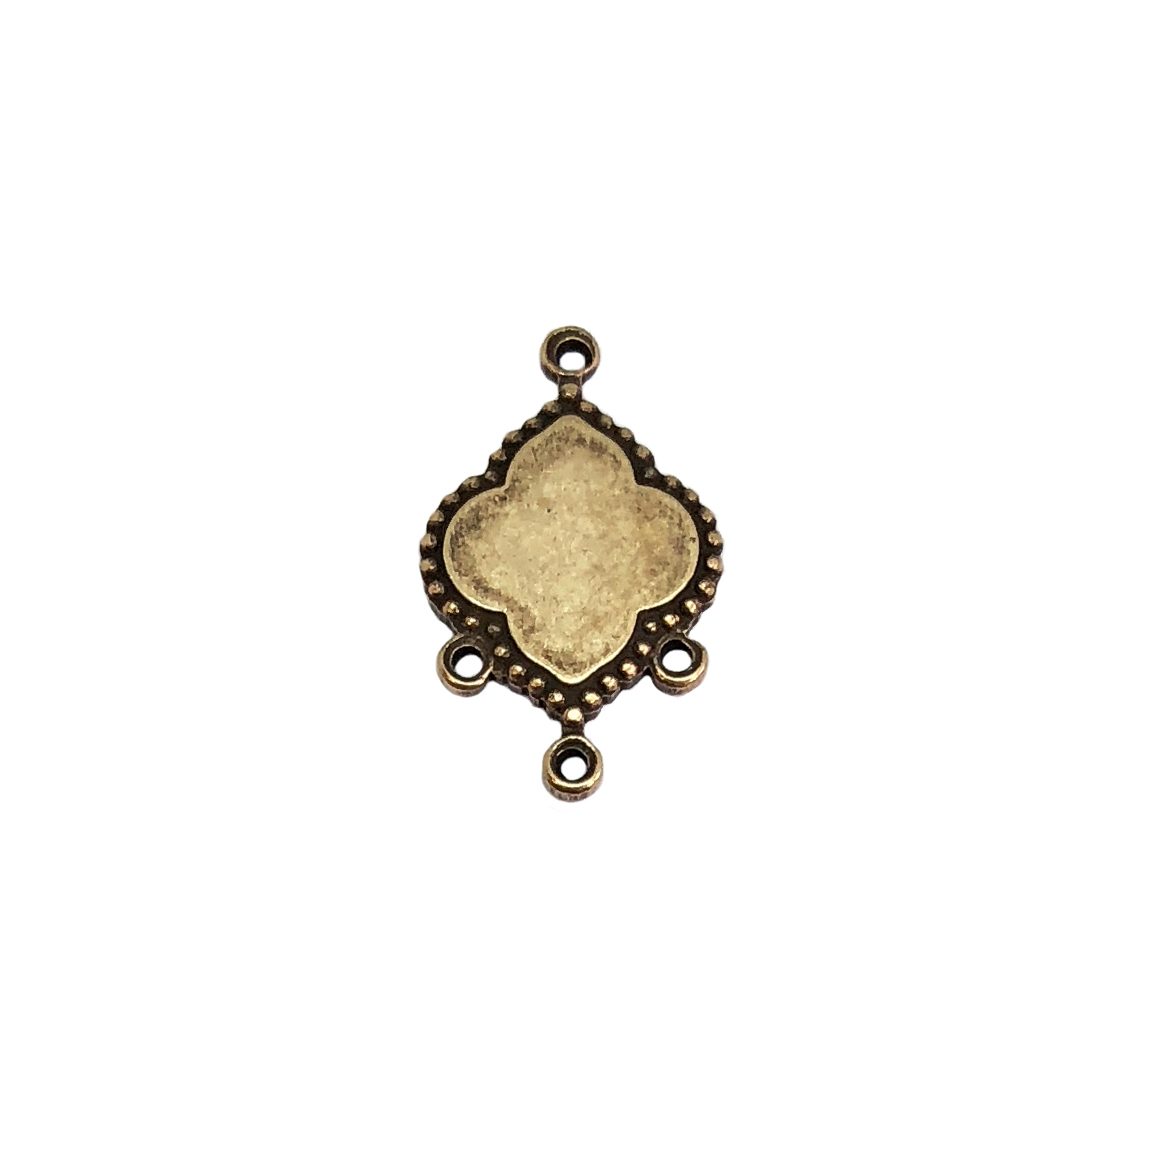 brass charm, flower charm, jewelry making, 05962, brass ox, antique brass, brass jewelry parts, vintage jewelry supplies, US made jewelry, nickel free jewelry, B'sue Boutiques, flower drop